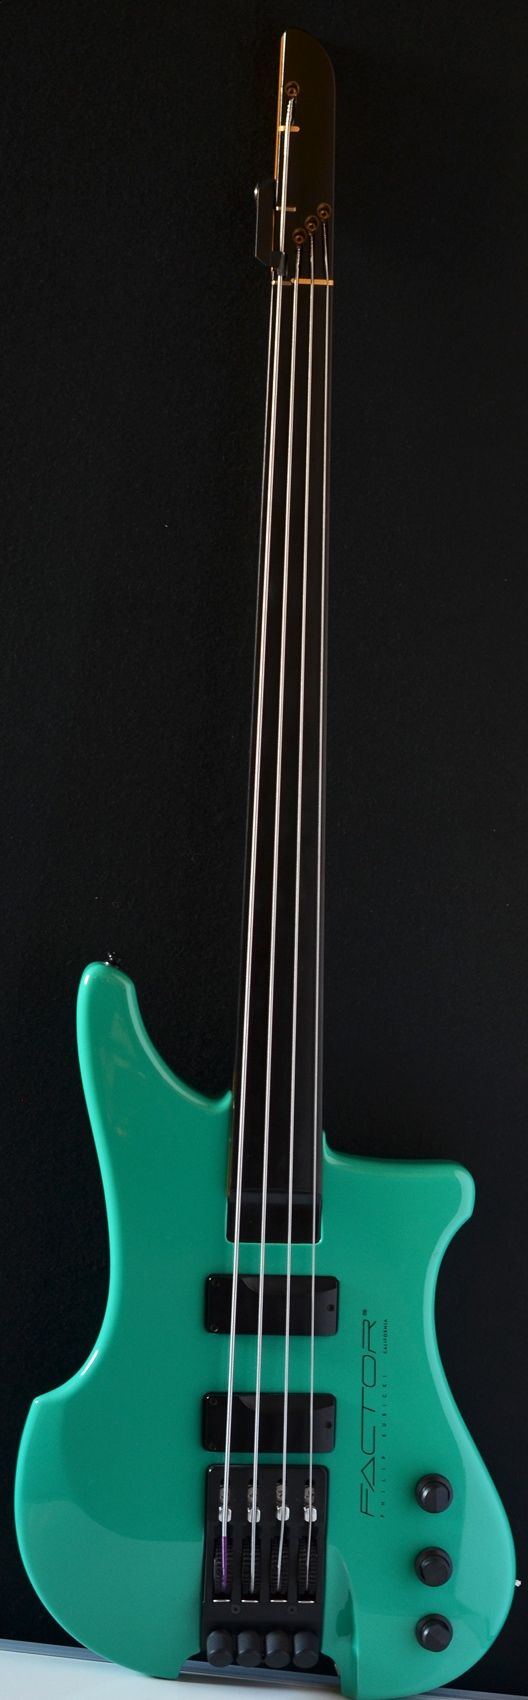 "Sea Green Kubicki Factor bass 4 string fretless bass. Company RESEARCH by #DdO:) - https://www.pinterest.com/claxtonw/bass-foundation/ - BASS FOUNDATION: If you would like to ""D"" tune your ""E"" string almost instantaneously, without changing string tension and not having to transpose, then the Ex Factor is your only choice. The Ex Factor 4 string bass has a 32"" scale and allows the ""E"" string to be released to a longer ""D"" length of 36"". Available with frets or fretless."